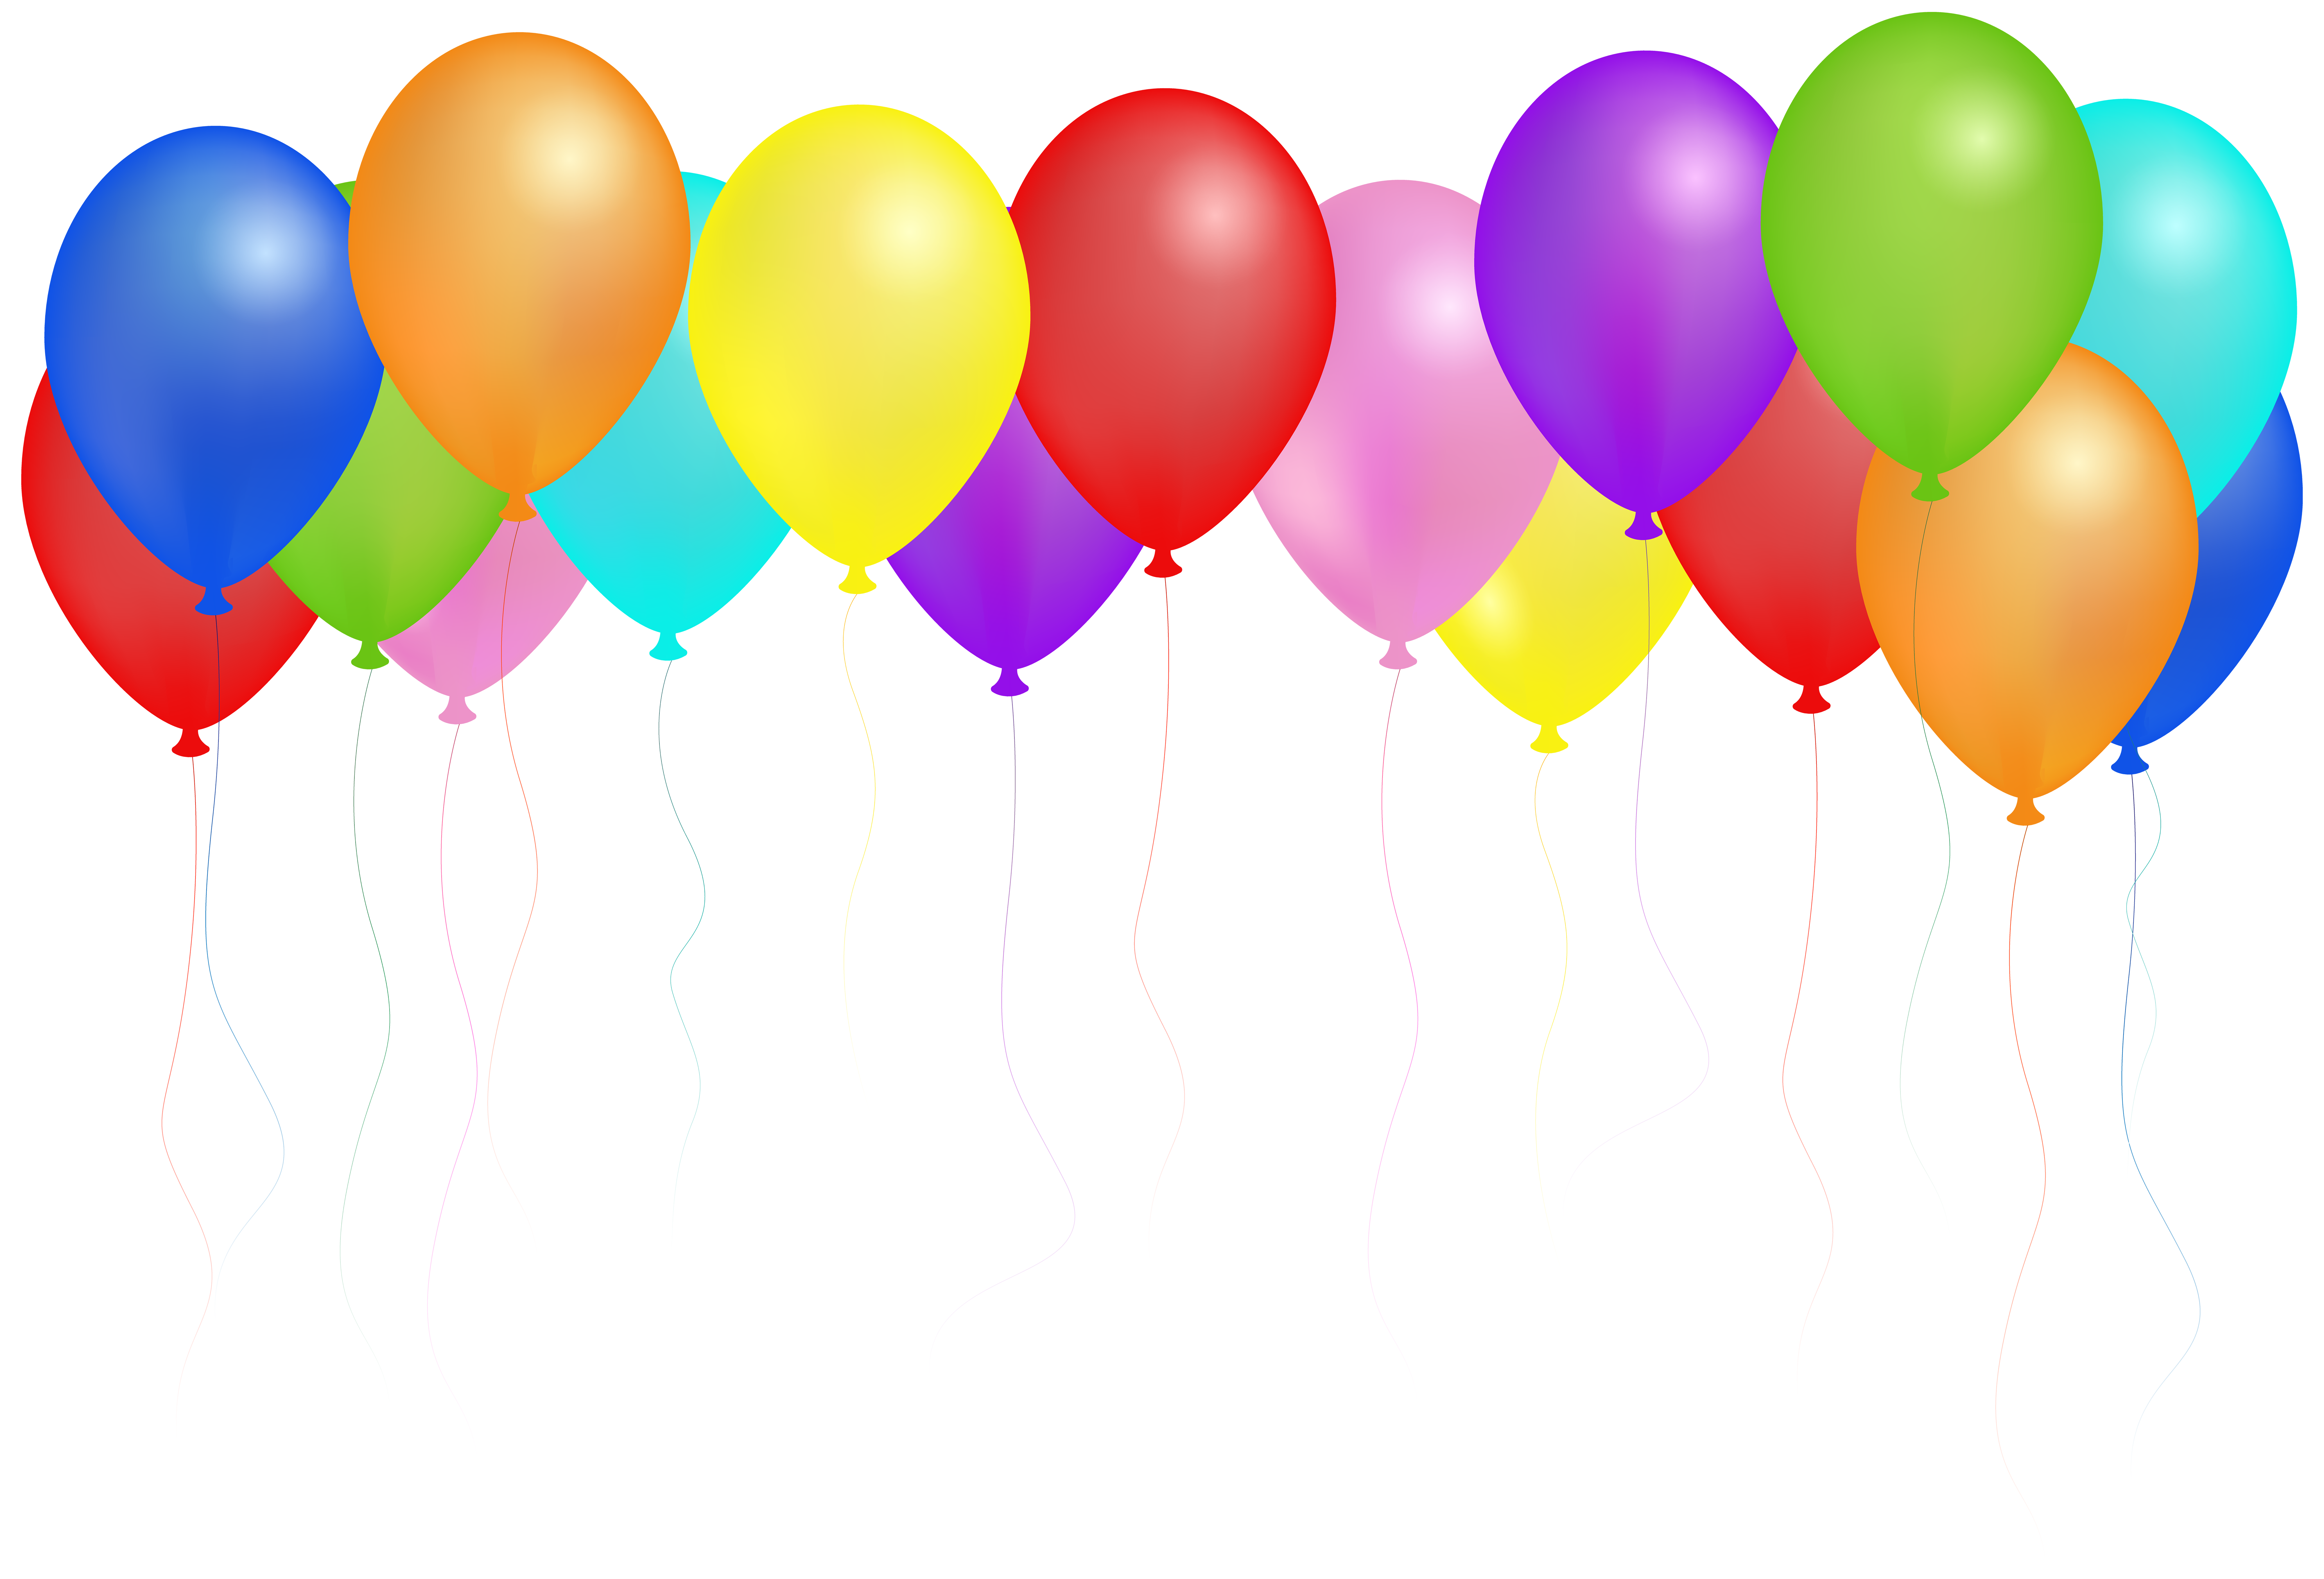 Clipart balloon clip art. Balloons png image gallery